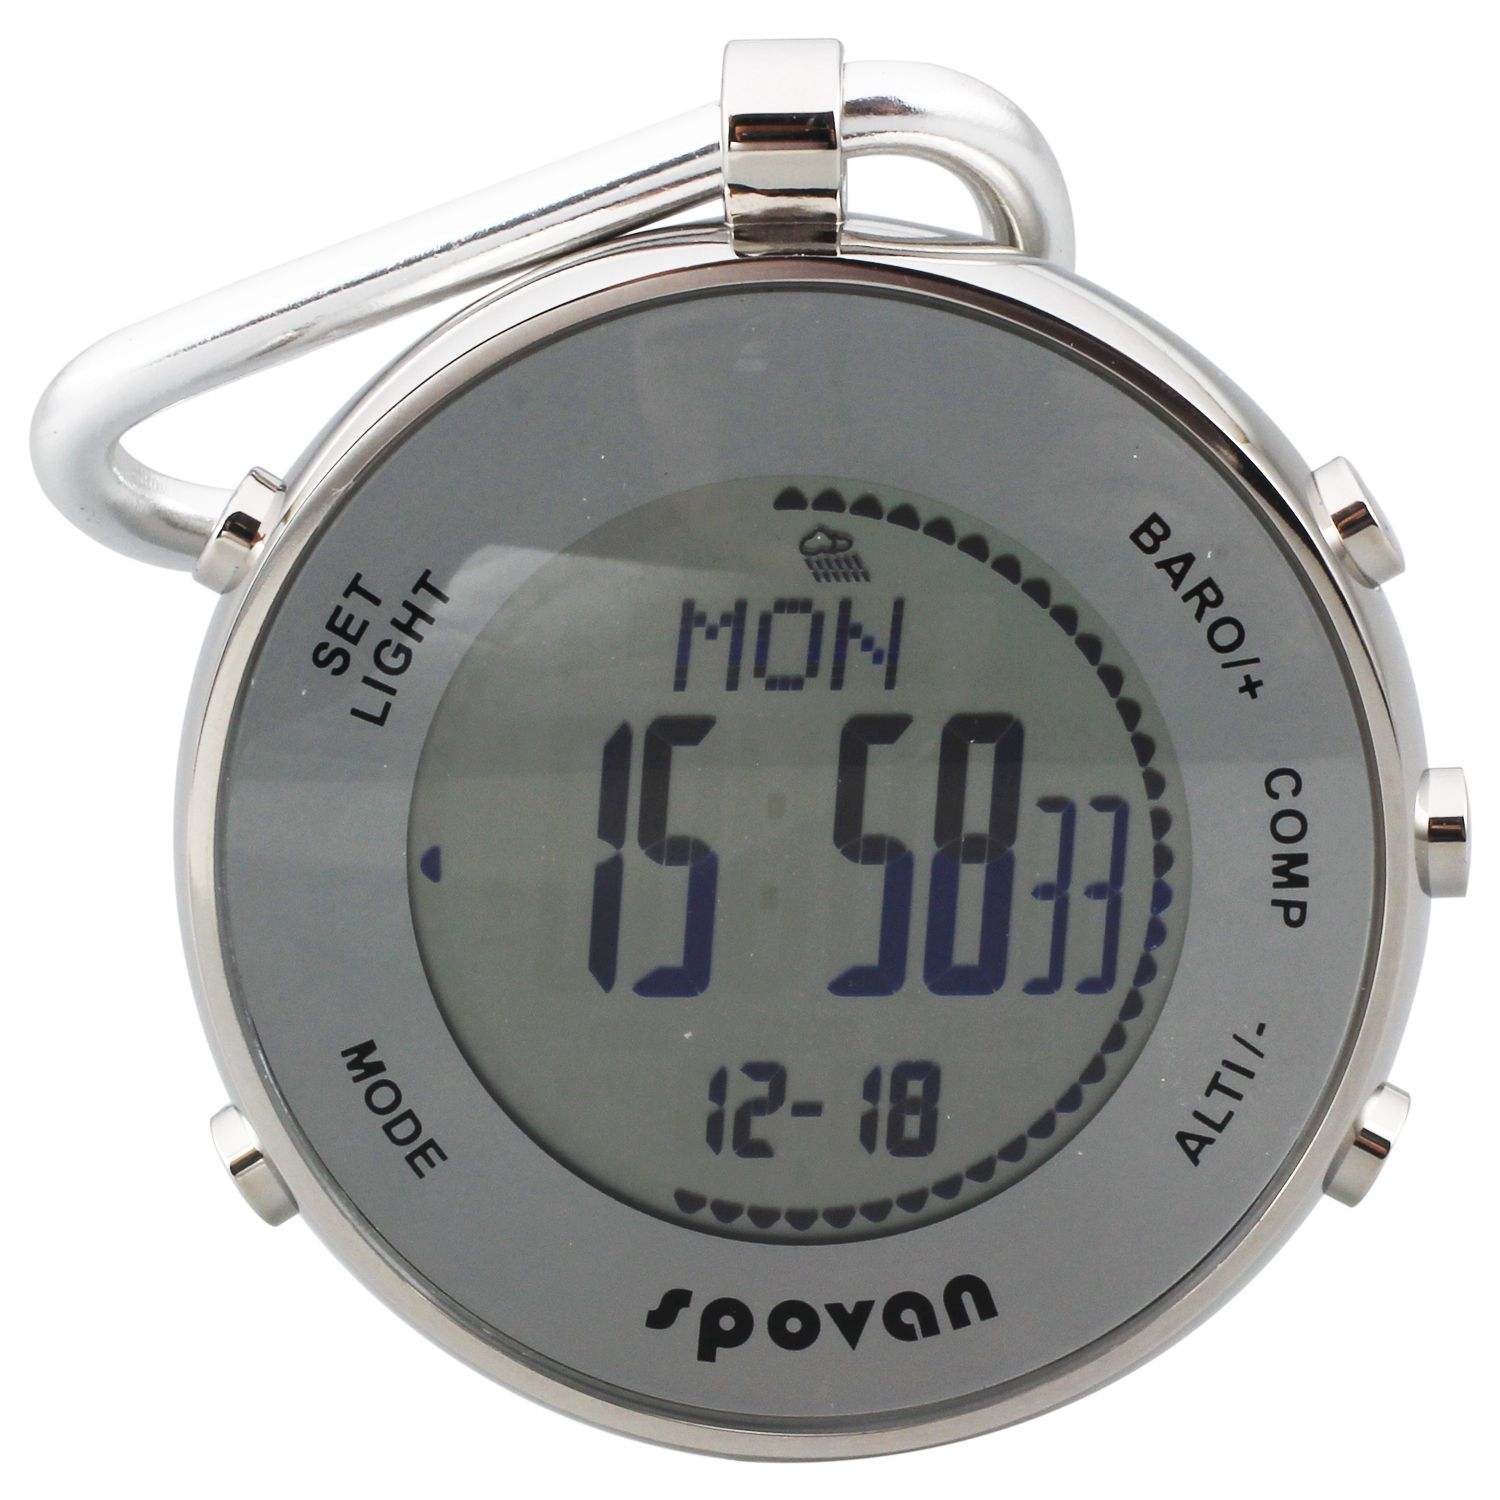 spovan White Multifunctional Outdoor Sport Pocket Watch with Altimeter/Barometer/Thermometer/Weather Forecast/Stopwatch/Compas